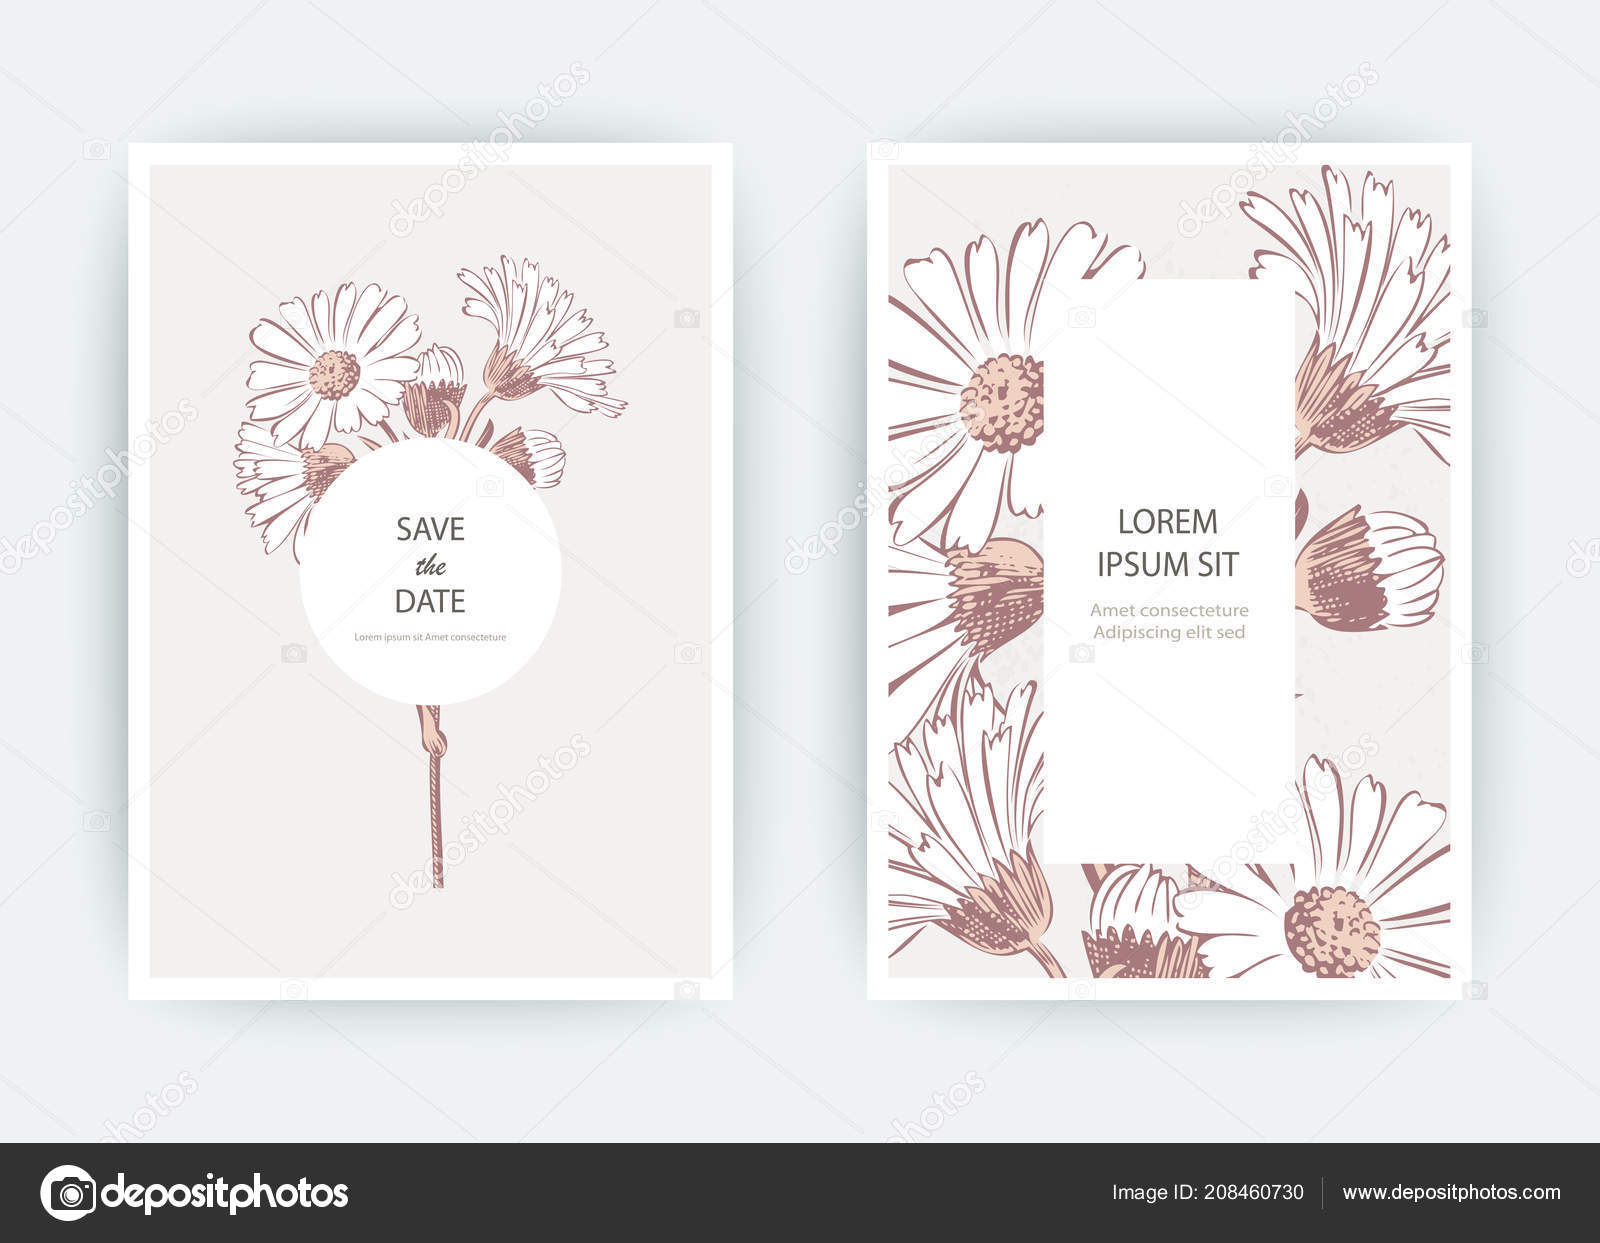 Card flowers calendula chrysanthemum chamomile daisy aster wedding wedding ornament minimalist pastel colors floral trendy poster invite vector decorative greeting card invitation design background vetor de cosveta stopboris Image collections